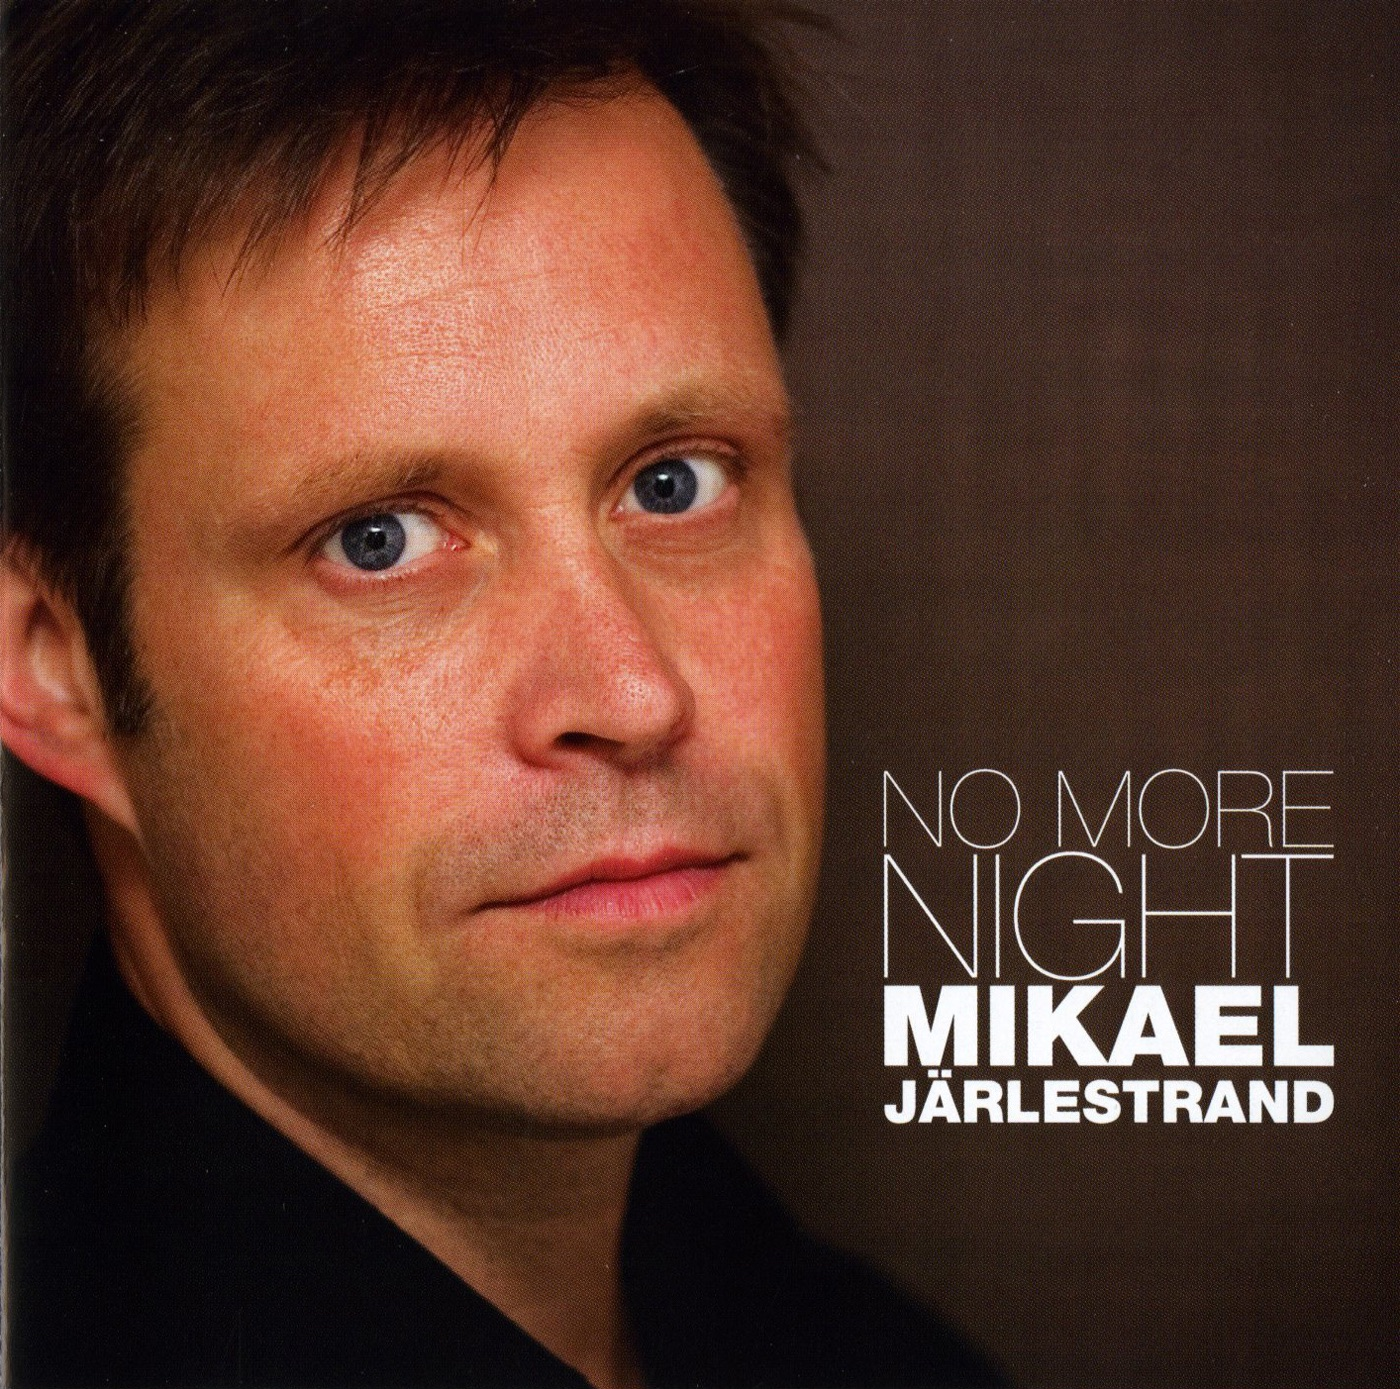 MP3 Songs Online:♫ No More Night - Mikael Jarlestrand album No More Night. Pop,Pop/Rock,Music listen to music online free without downloading.